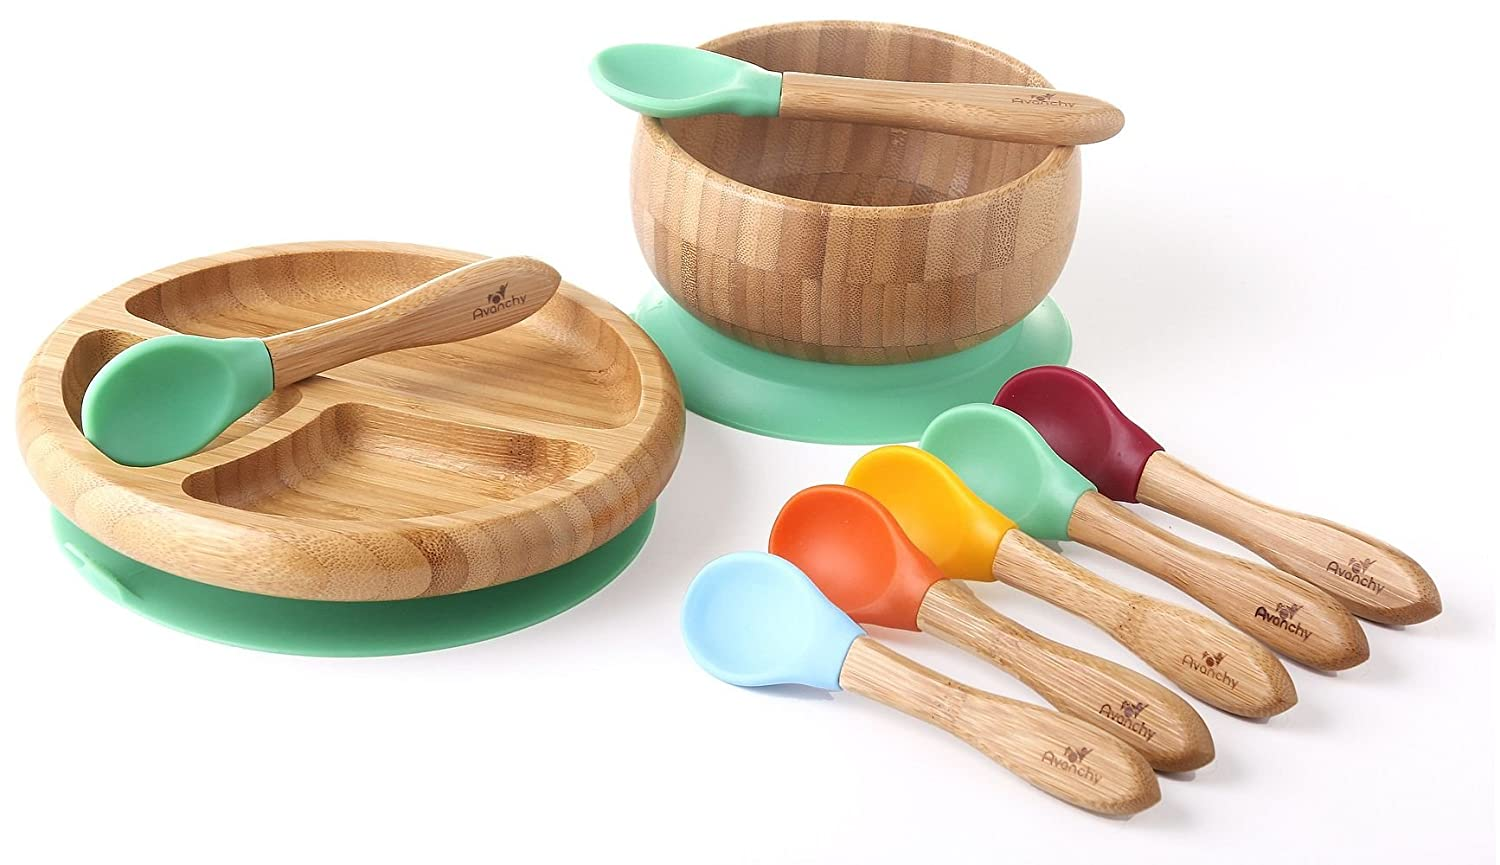 Avanchy – Rainbow Baby Set with Spill Proof, Stay Put Suction Bamboo Bowl and Spoon Set, Divided Plate and Spoon Set, and 5 Colorful Spoons – Green